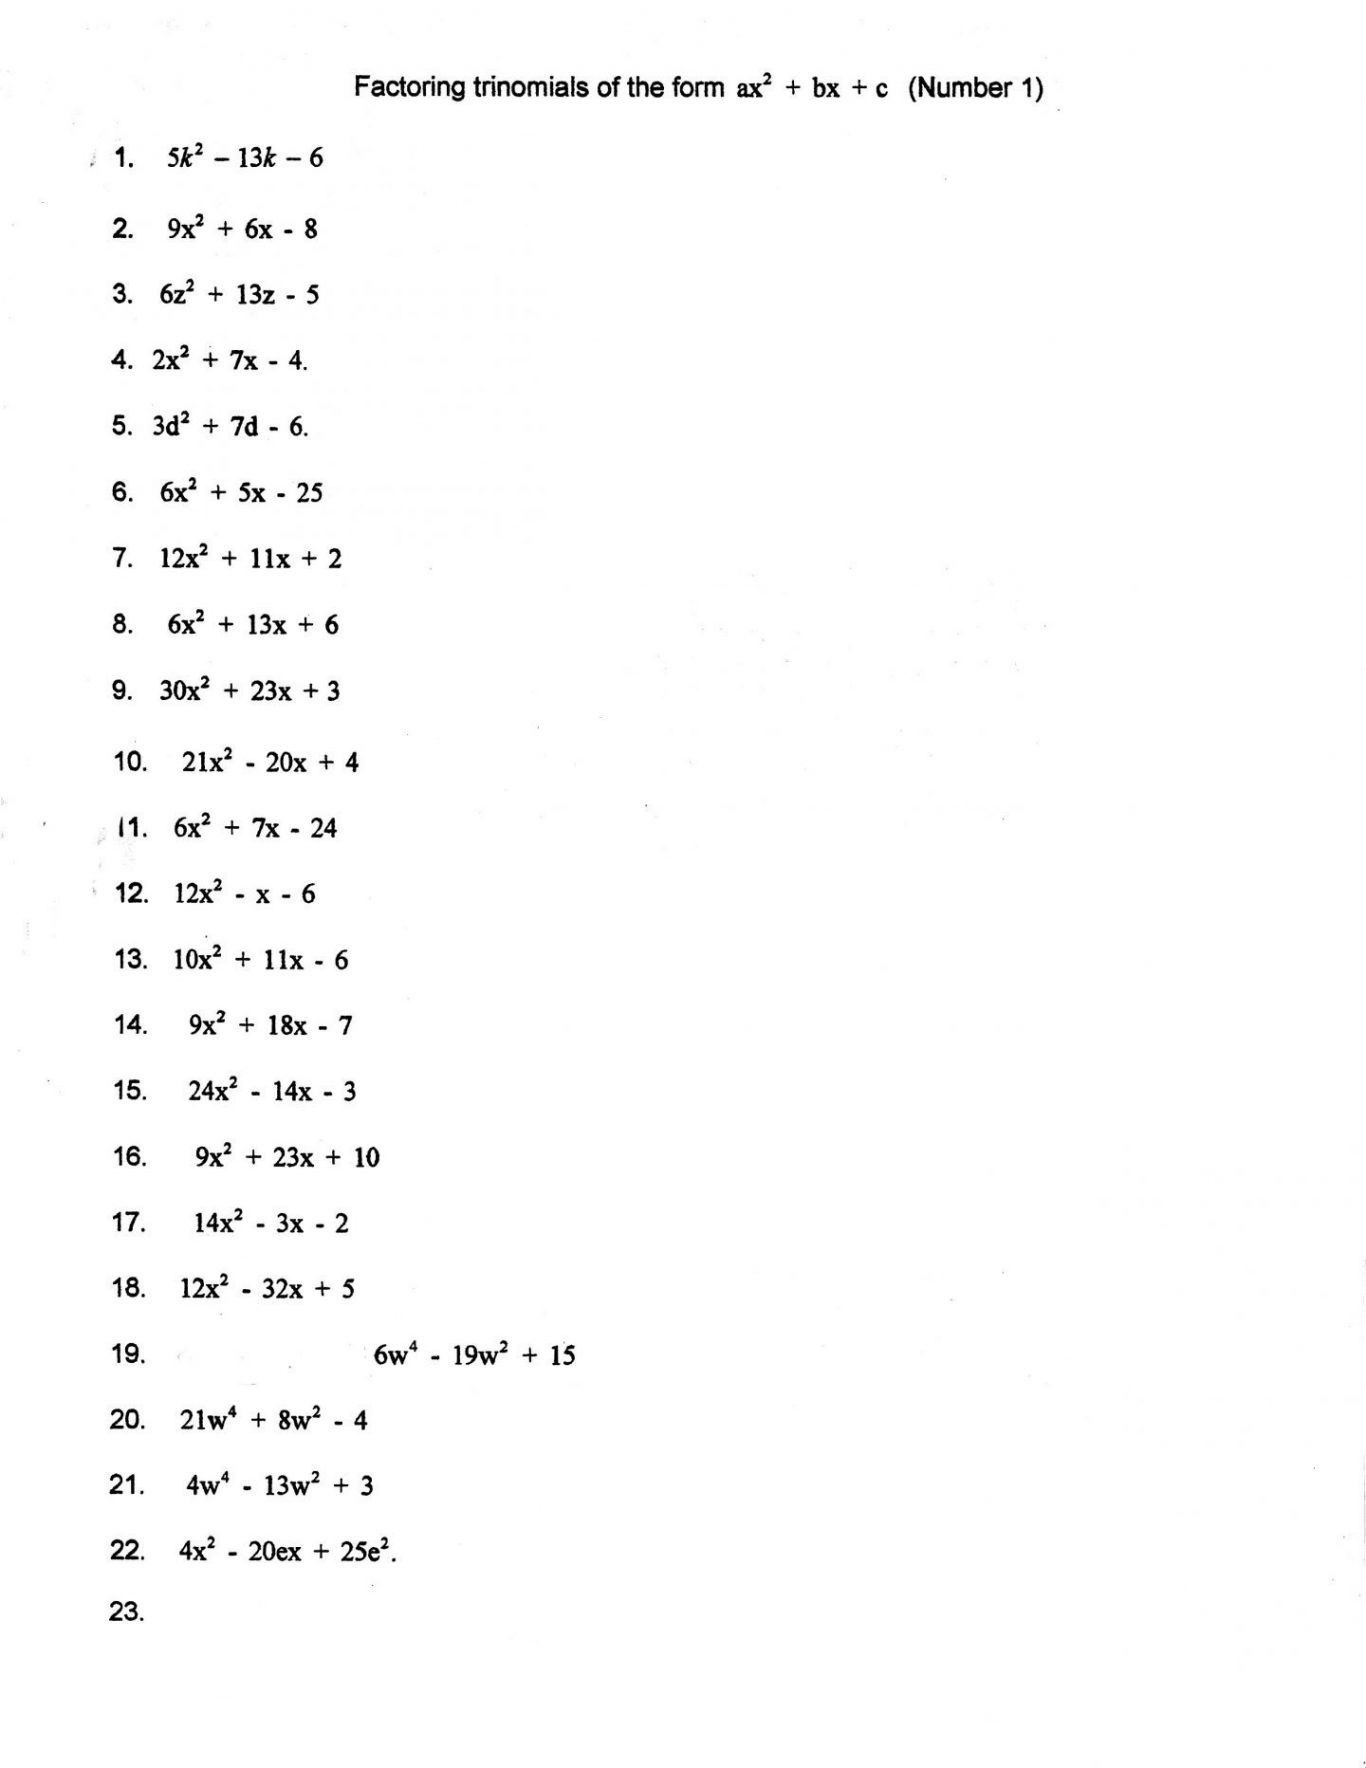 Worksheet Factoring Trinomials Answers Key